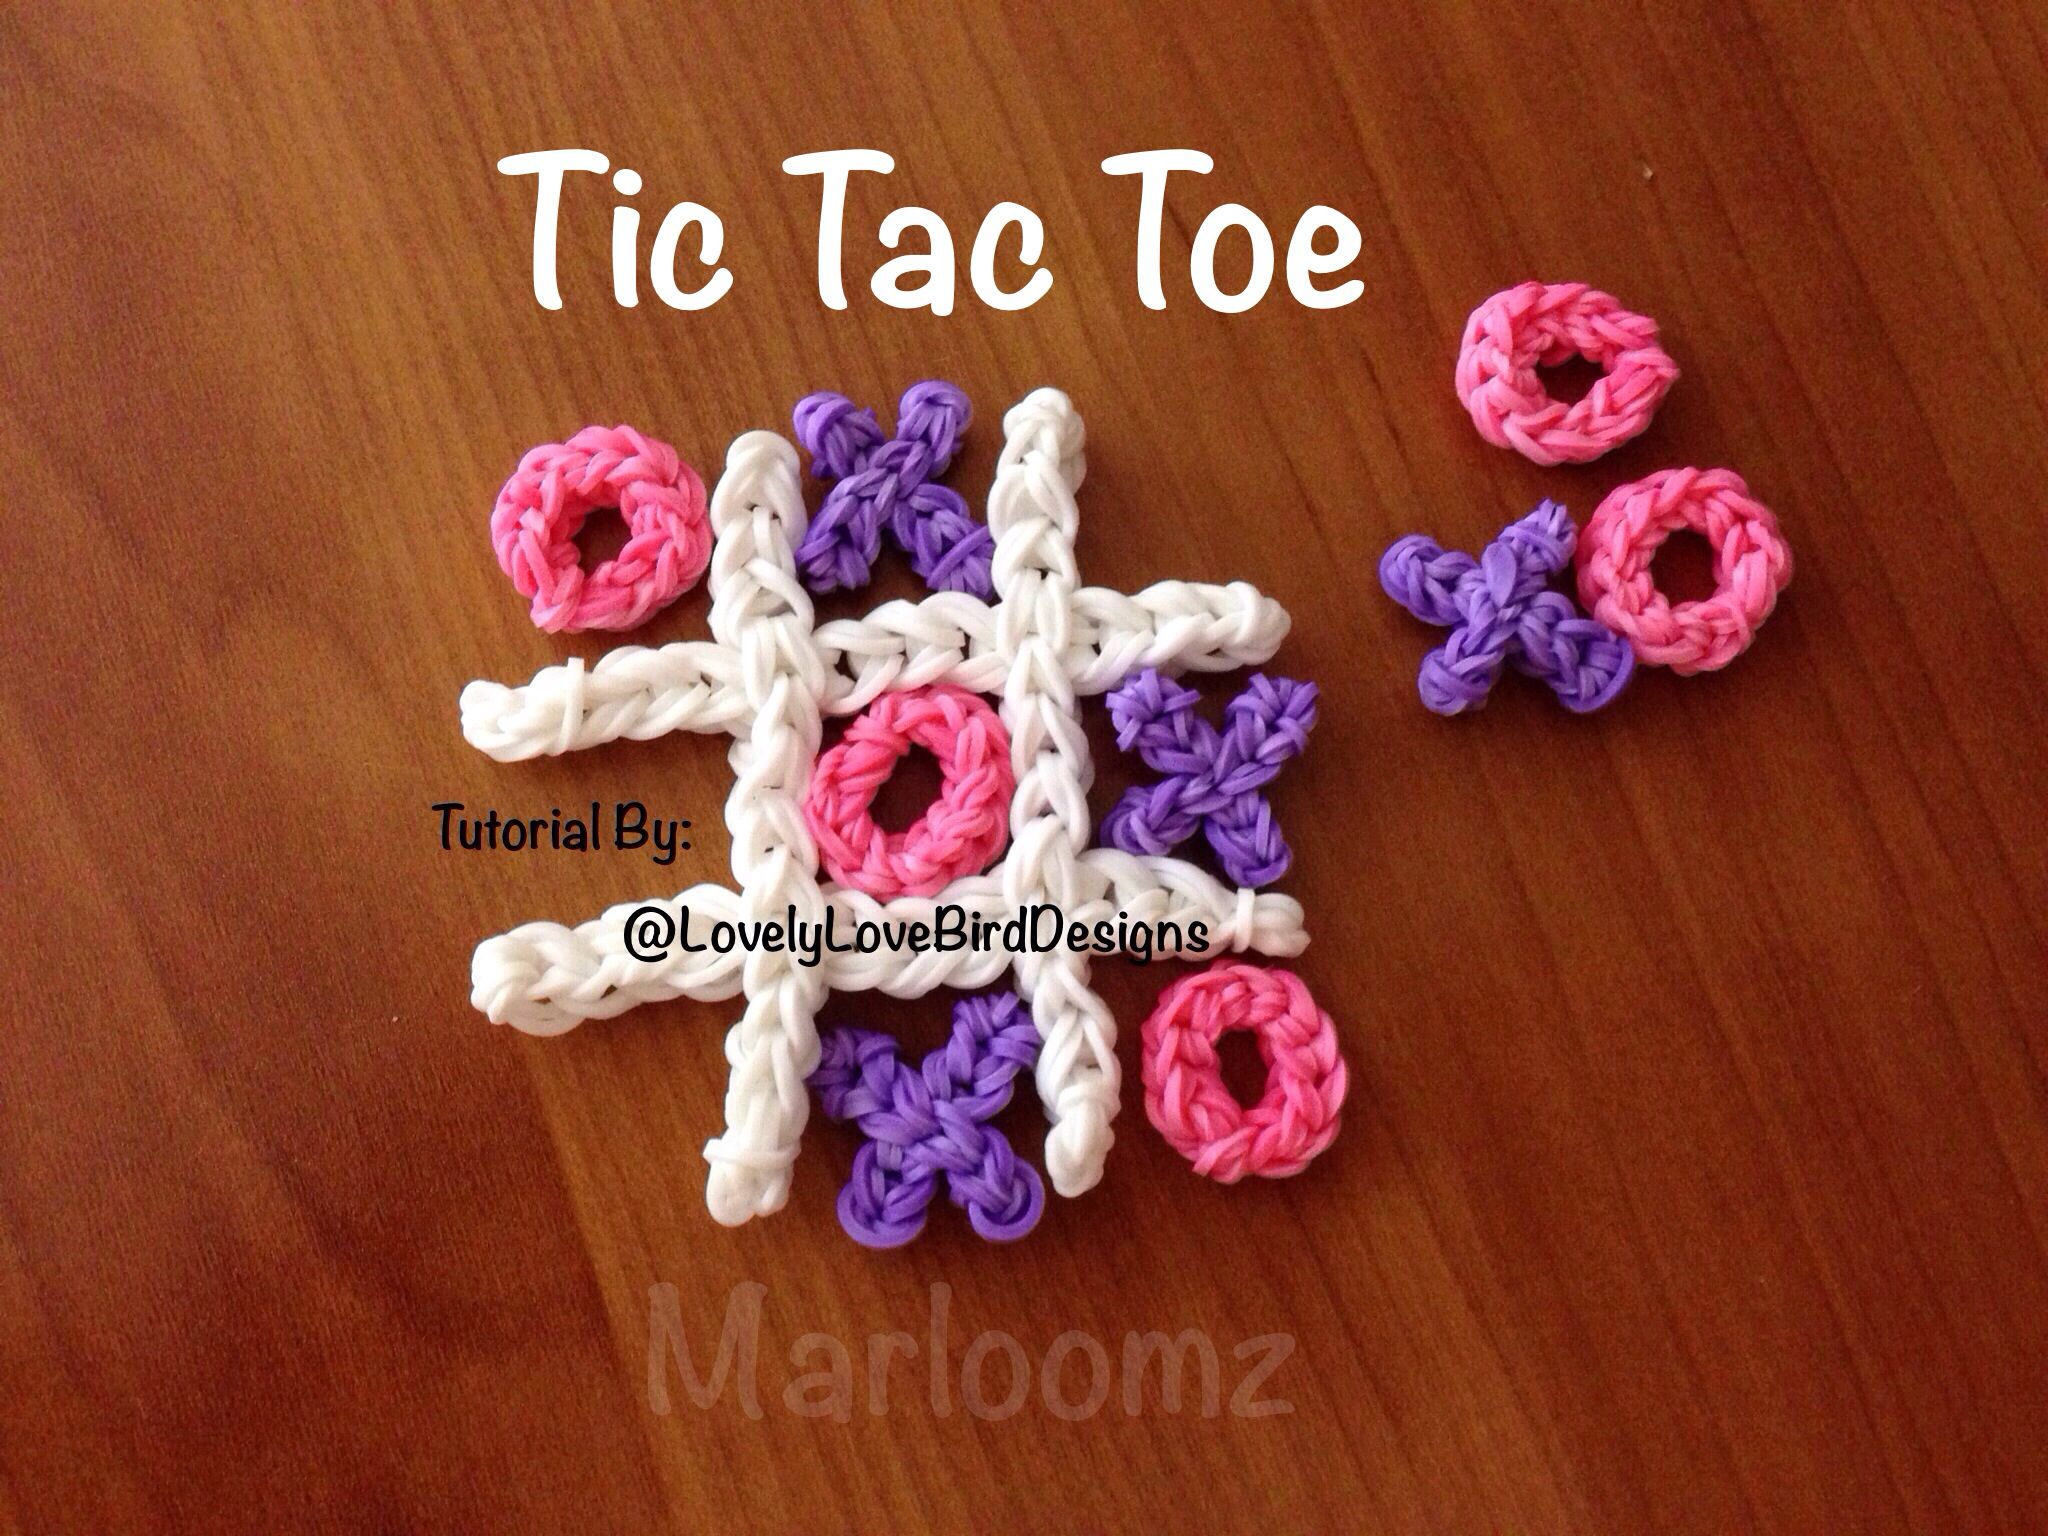 Rainbow loom Tic Tac Toe Tutorial By: lovely LoveBird Designs